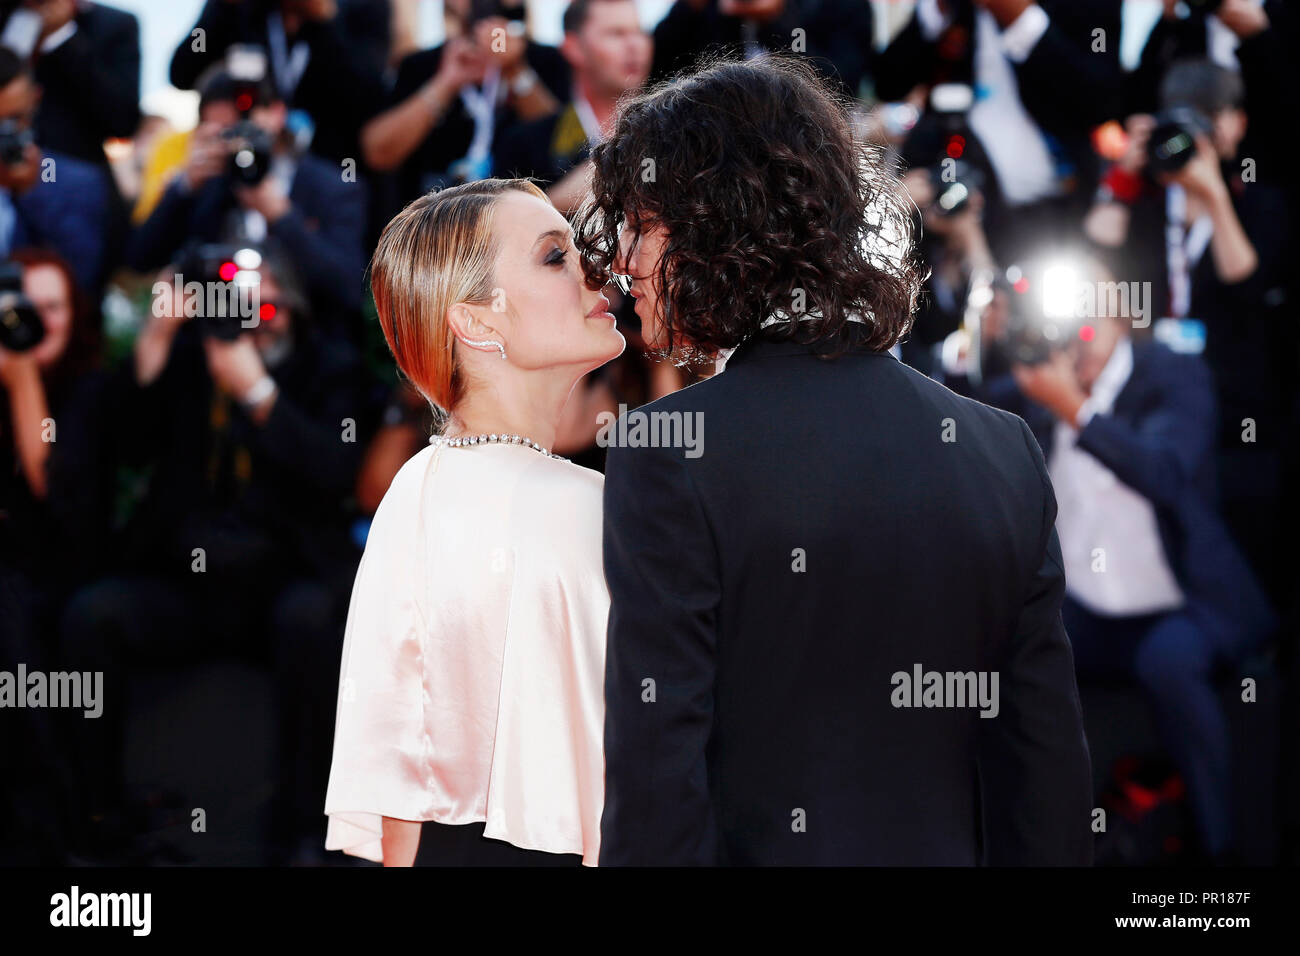 VENICE, ITALY - AUGUST 29: Singer Francesco Motta and actress Carolina Crescentini walk the red carpet of the opening ceremony during the 75th Venice  - Stock Image